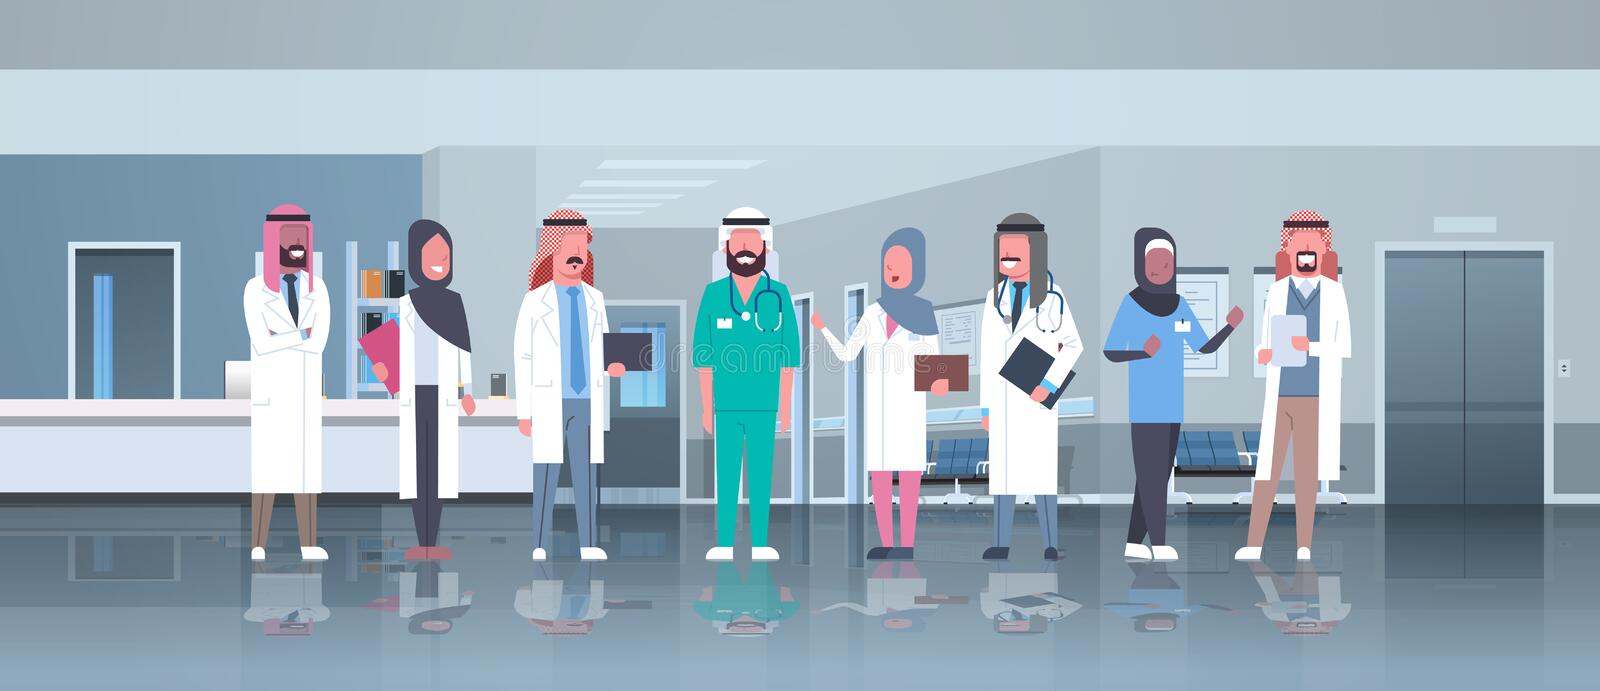 Group of arabic doctors team treatment communication concept arab medical hospital mix race workers standing together stock illustration